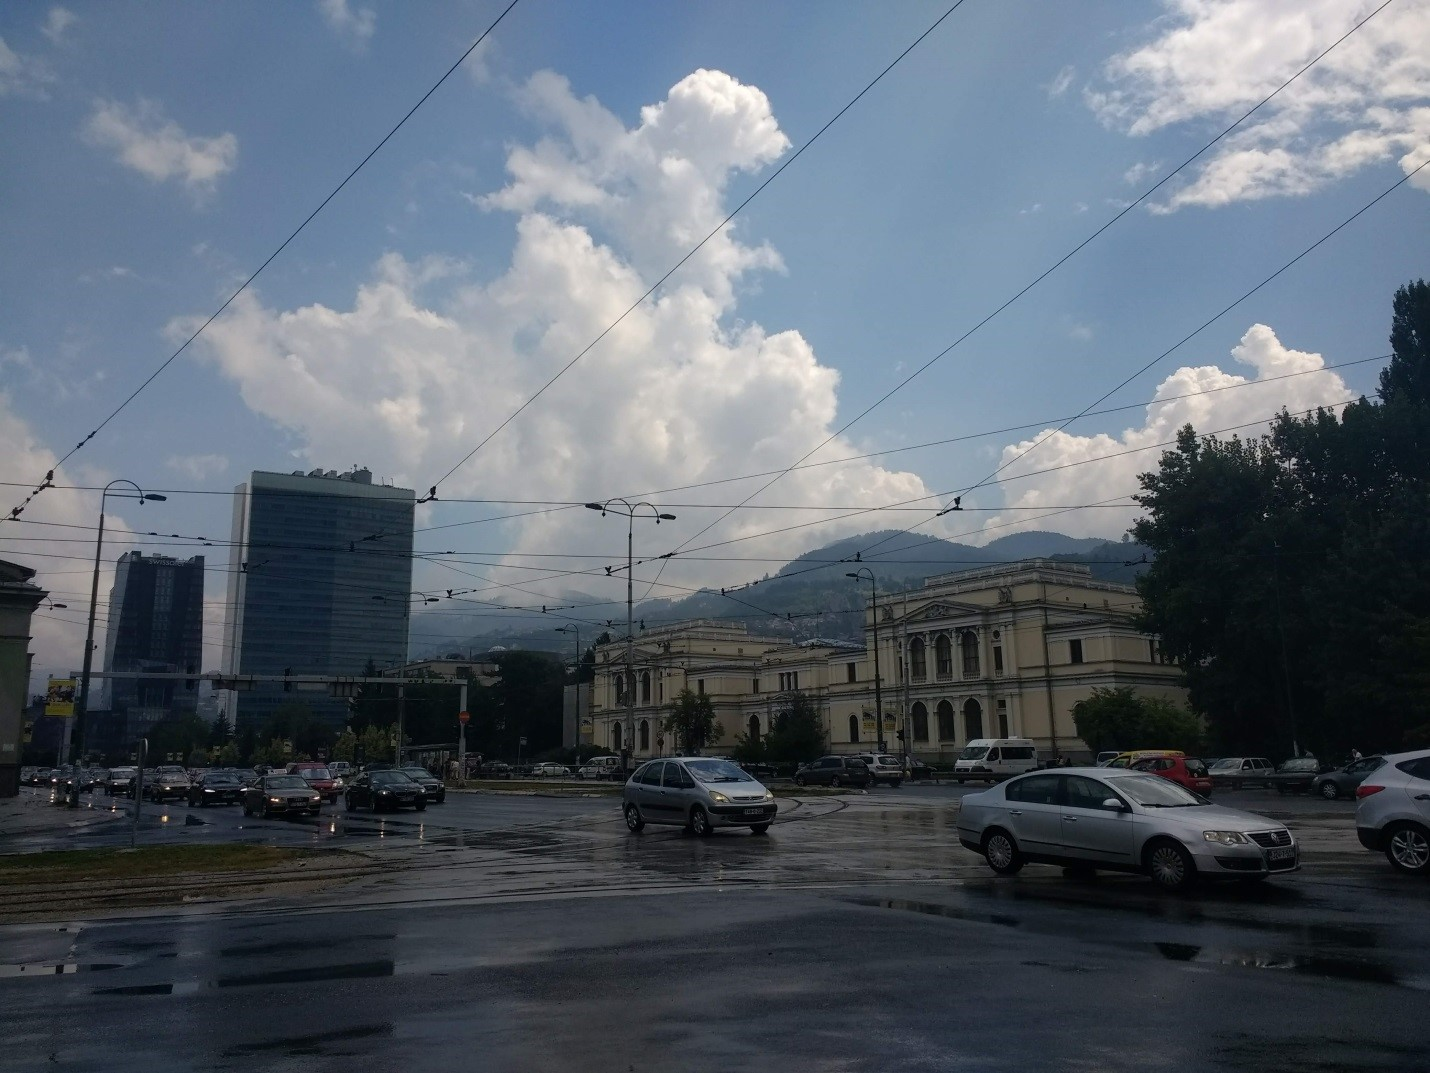 Crossing with tram lines in front of the National Museum of Bosnia and Herzegowina.